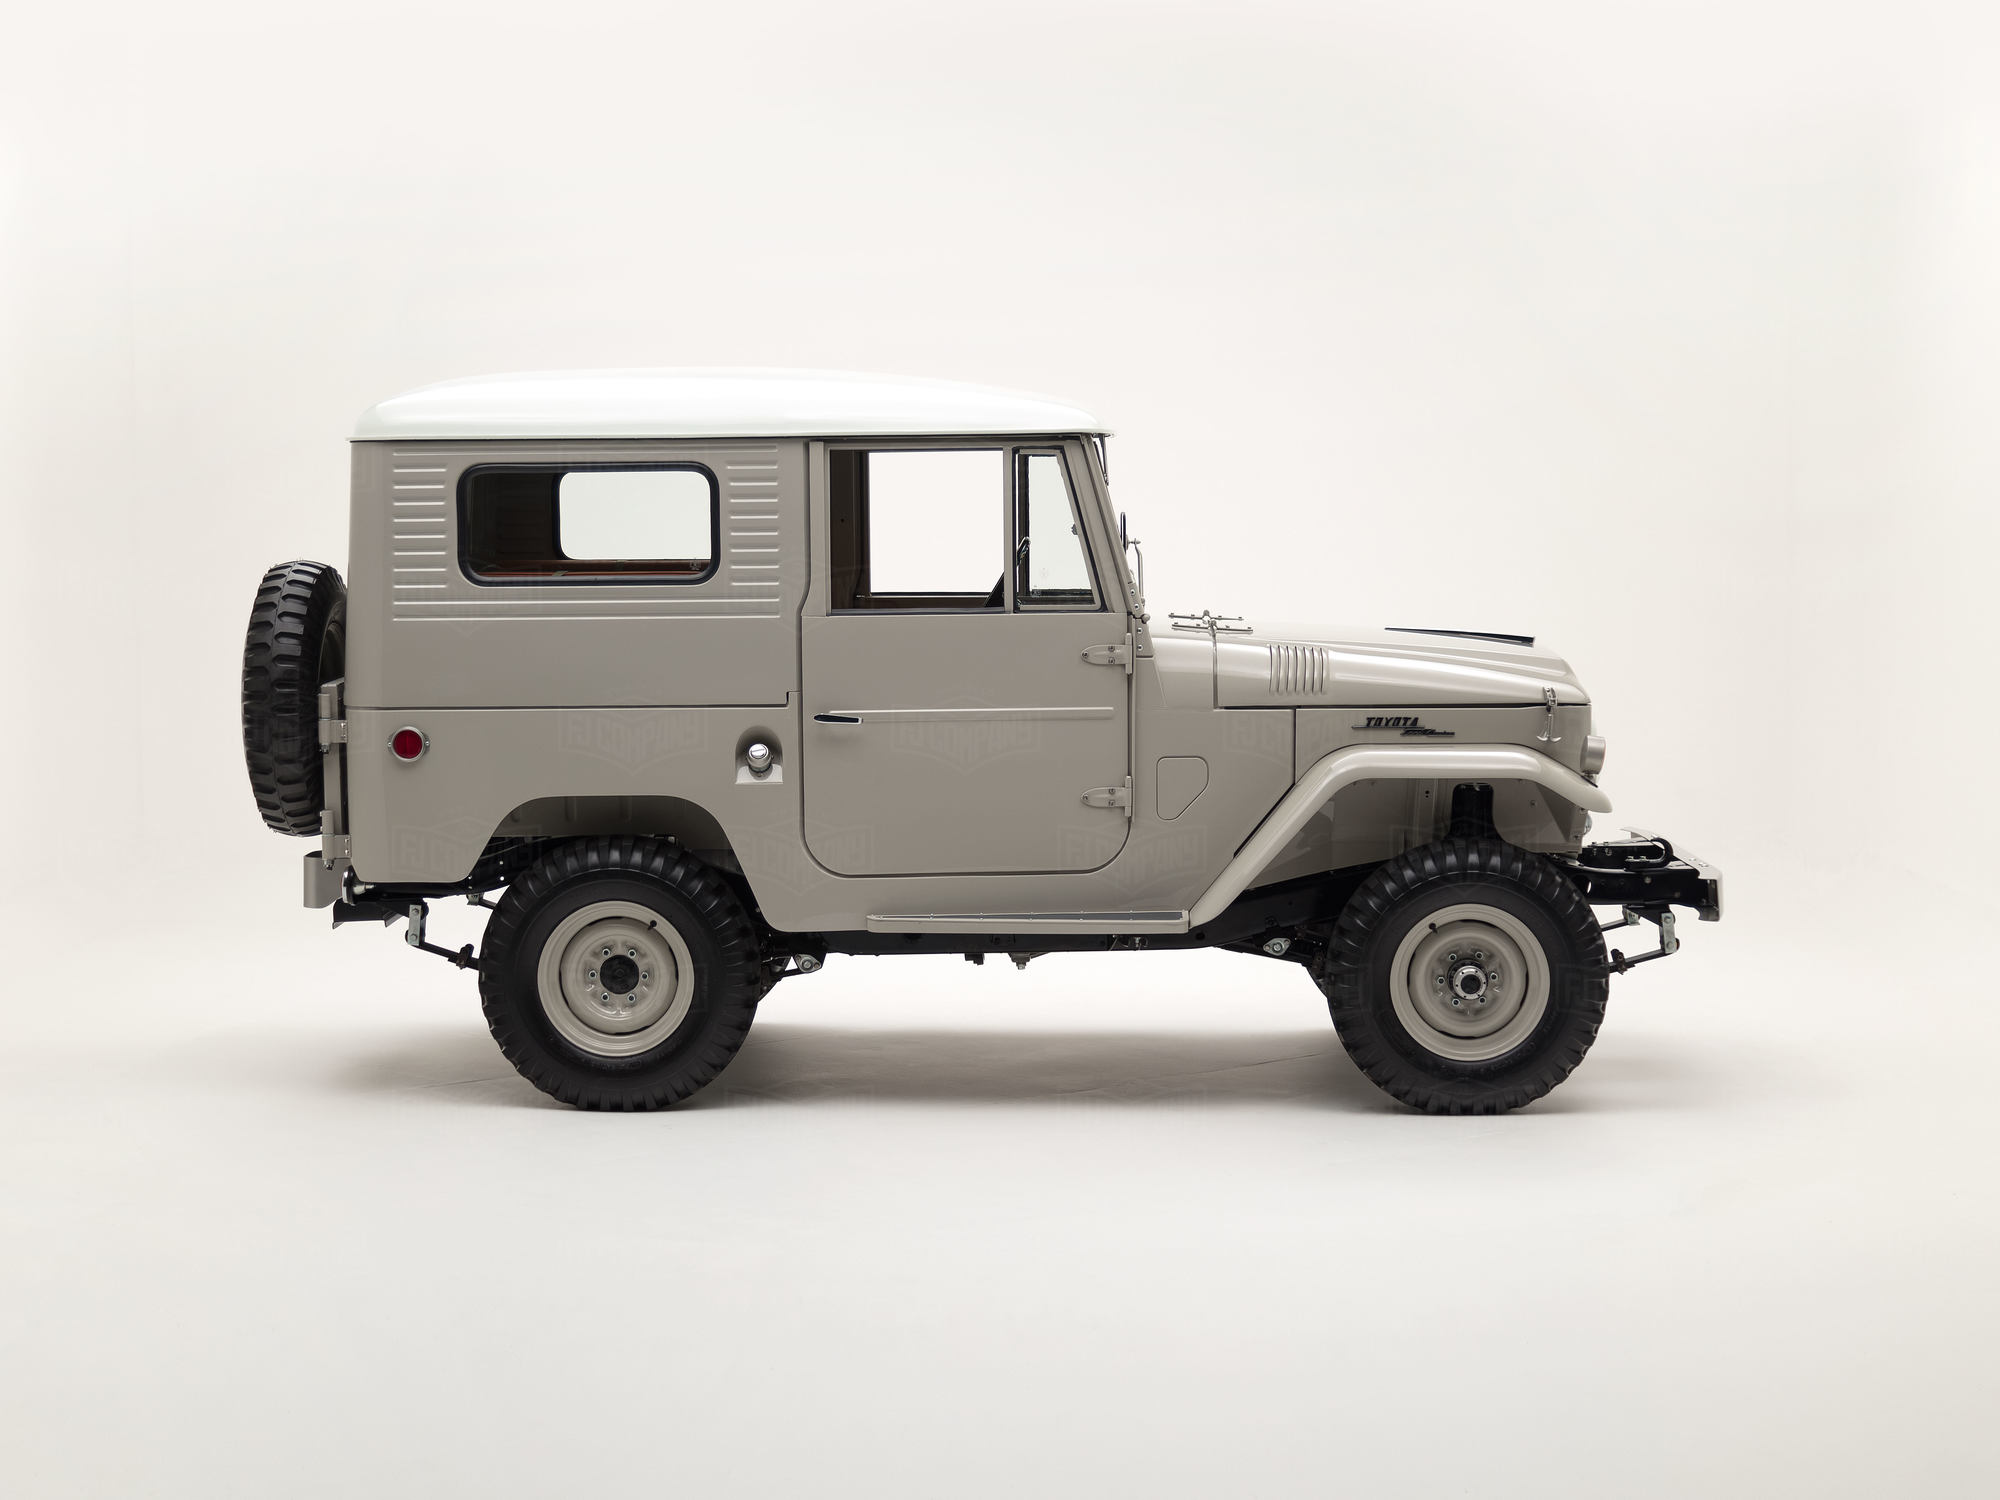 A collector's edition FJ40, seeped in authenticity.